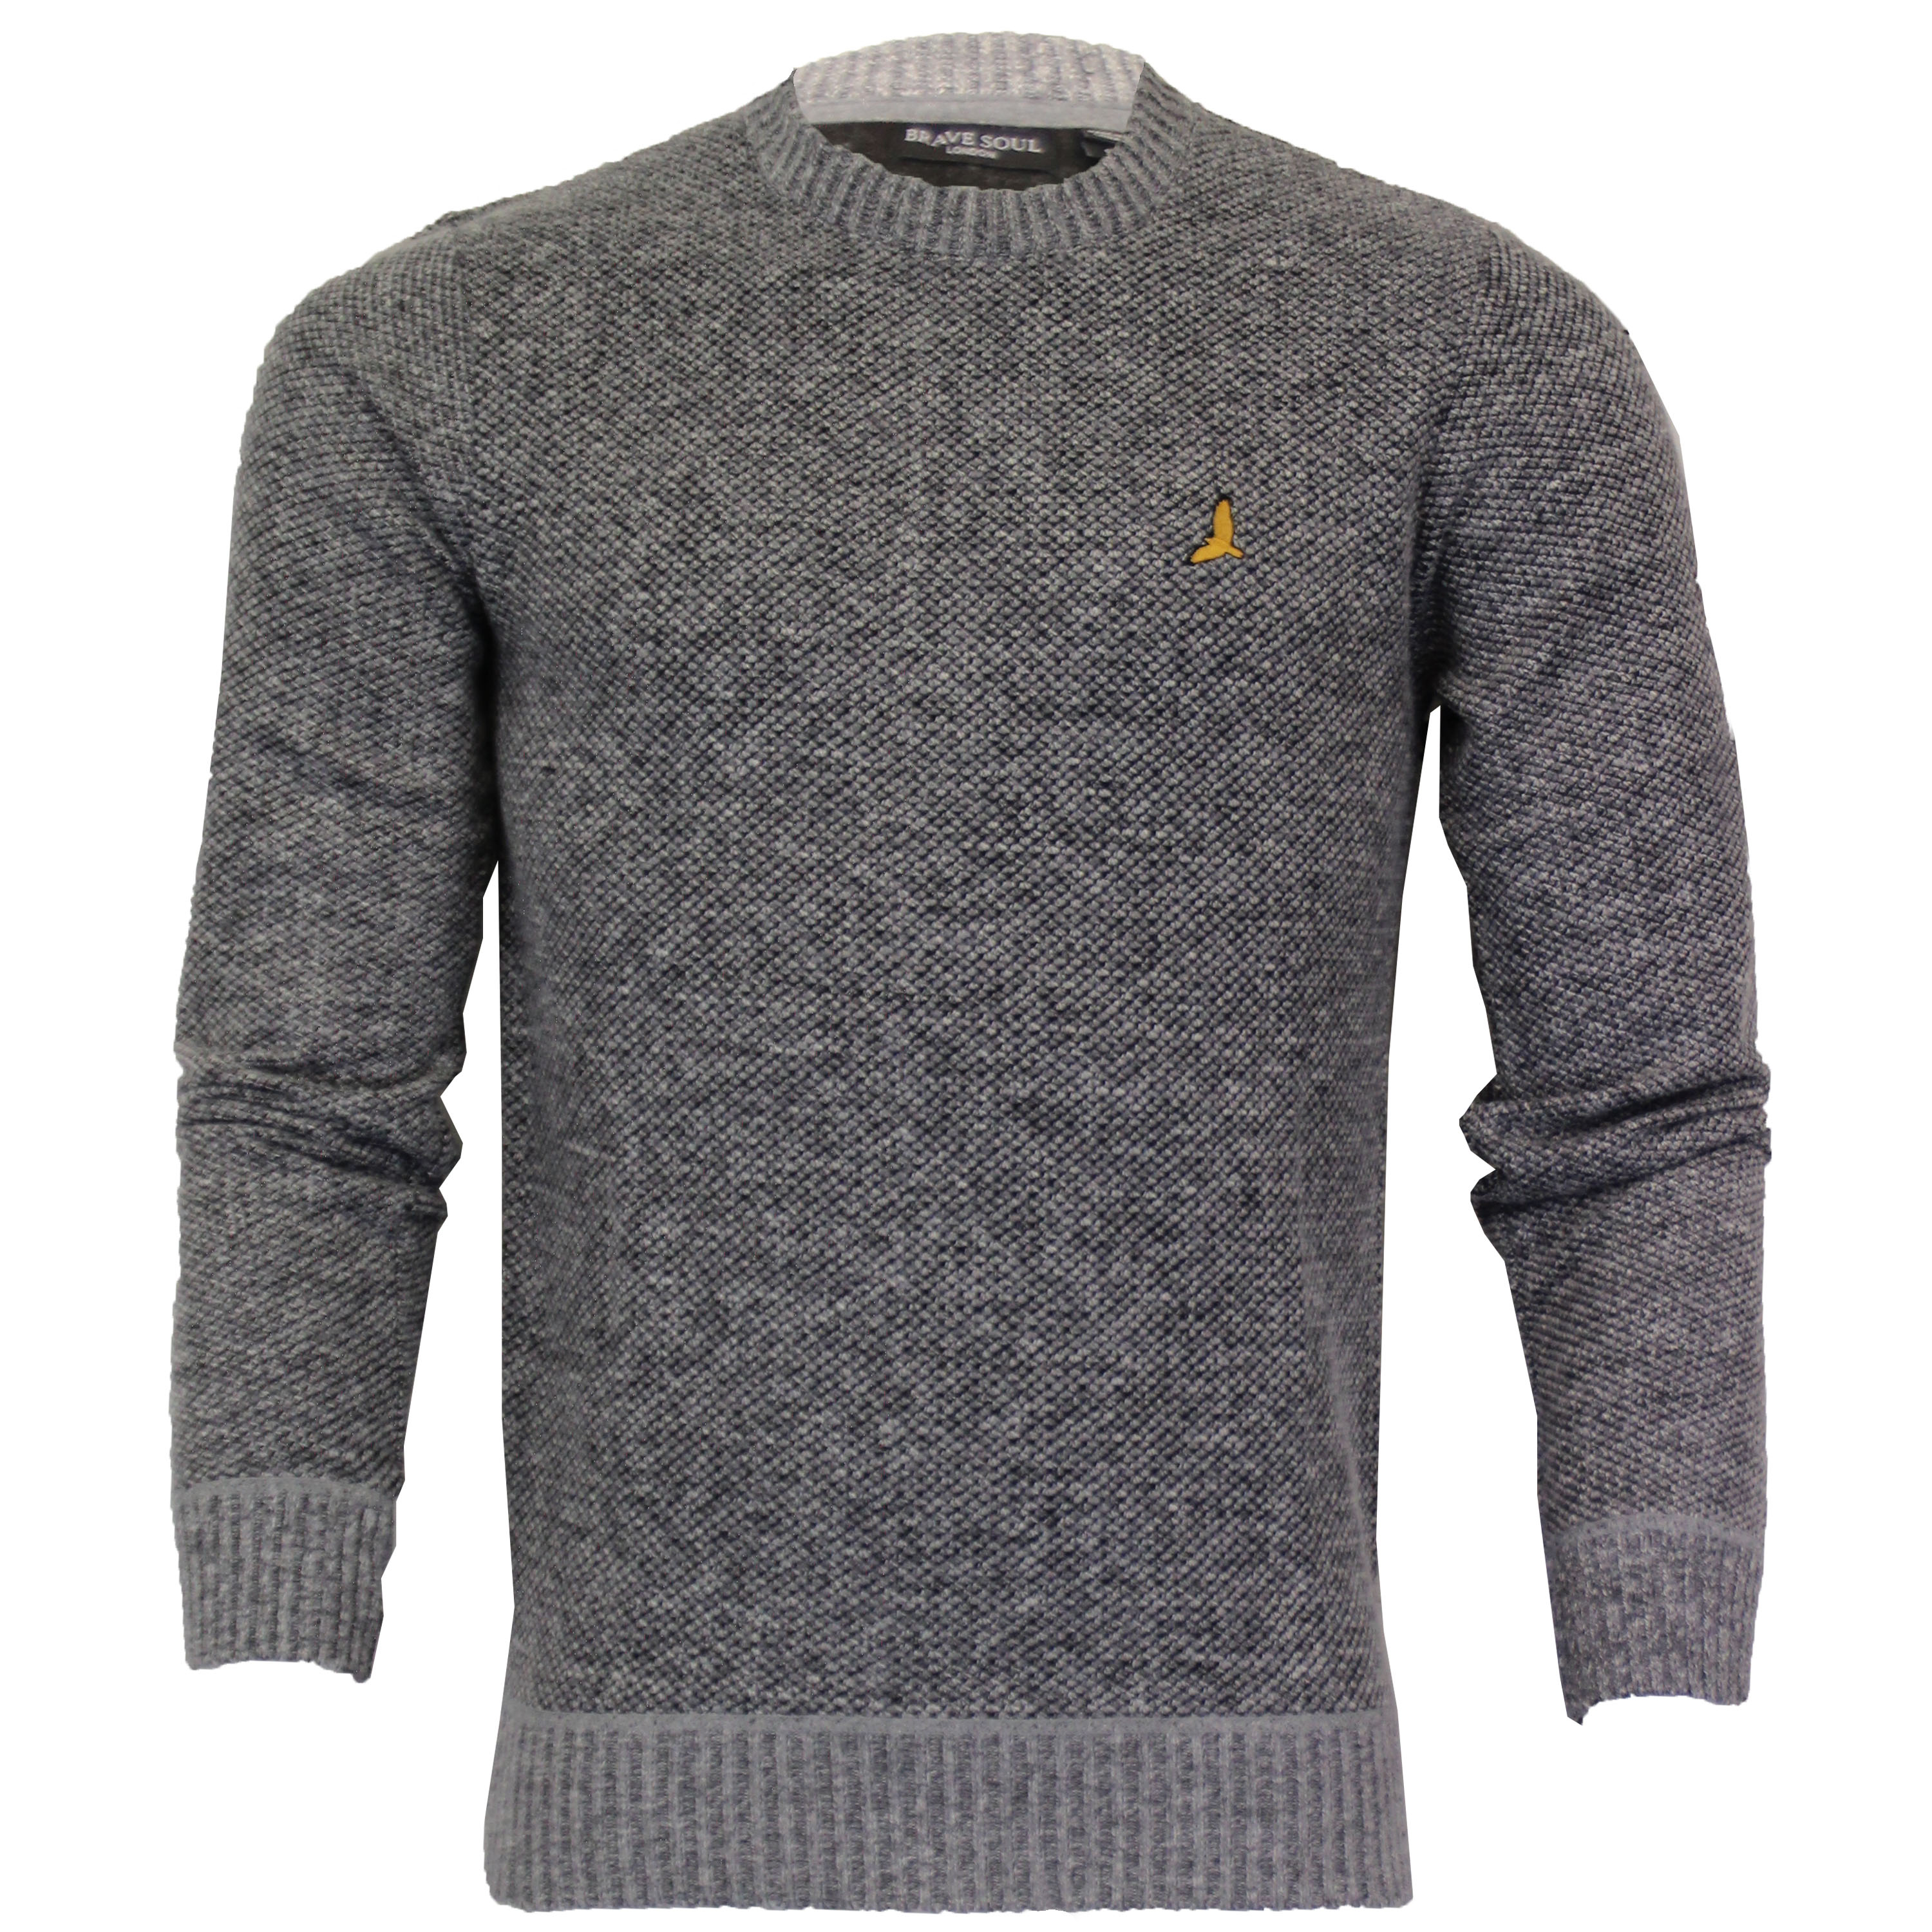 Mens-Jumper-Brave-Soul-Knitted-Sweater-Pullover-GOODWIN-Crew-Neck-Top-Winter-New thumbnail 8